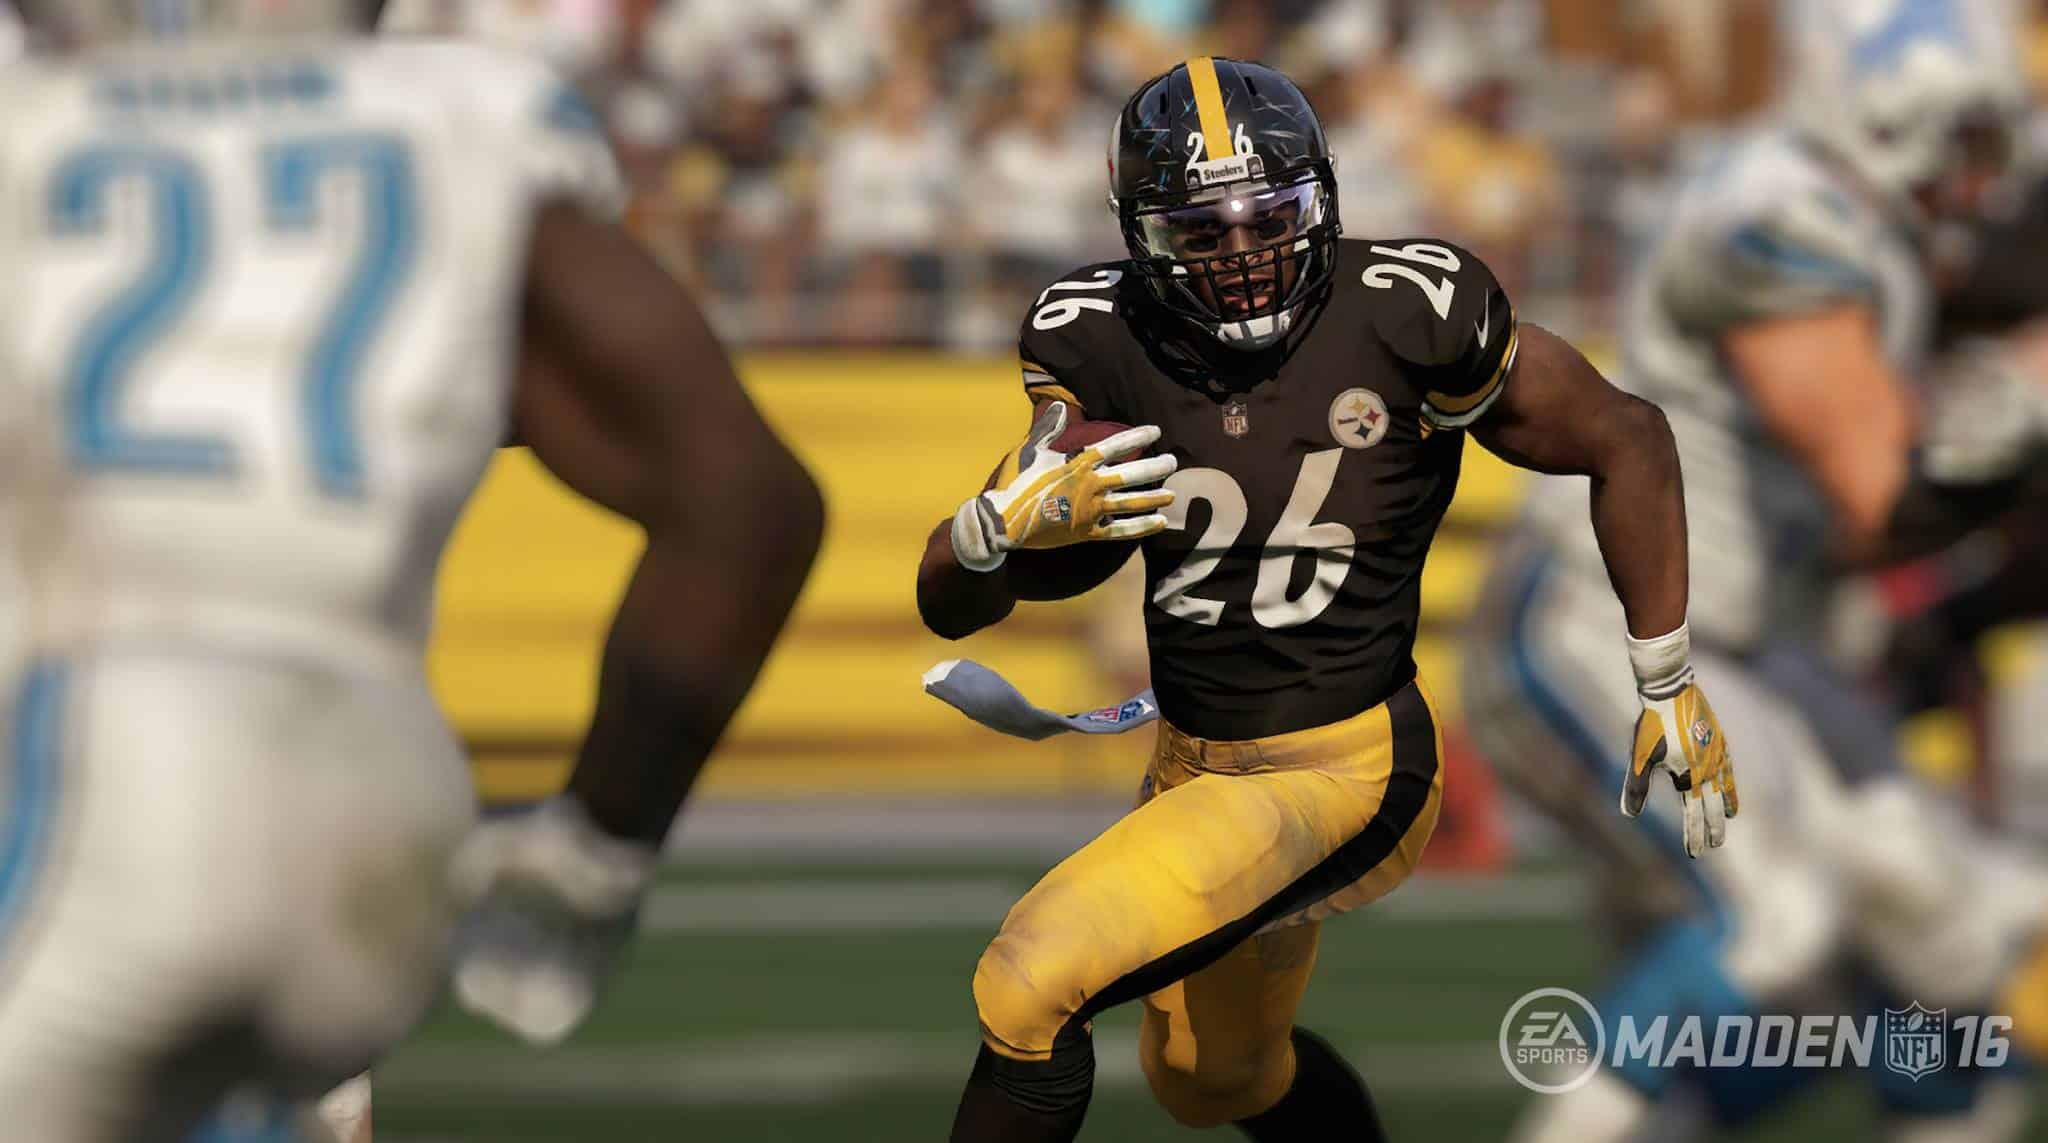 Graphically Madden NFL 16 is the most impressive title to date.